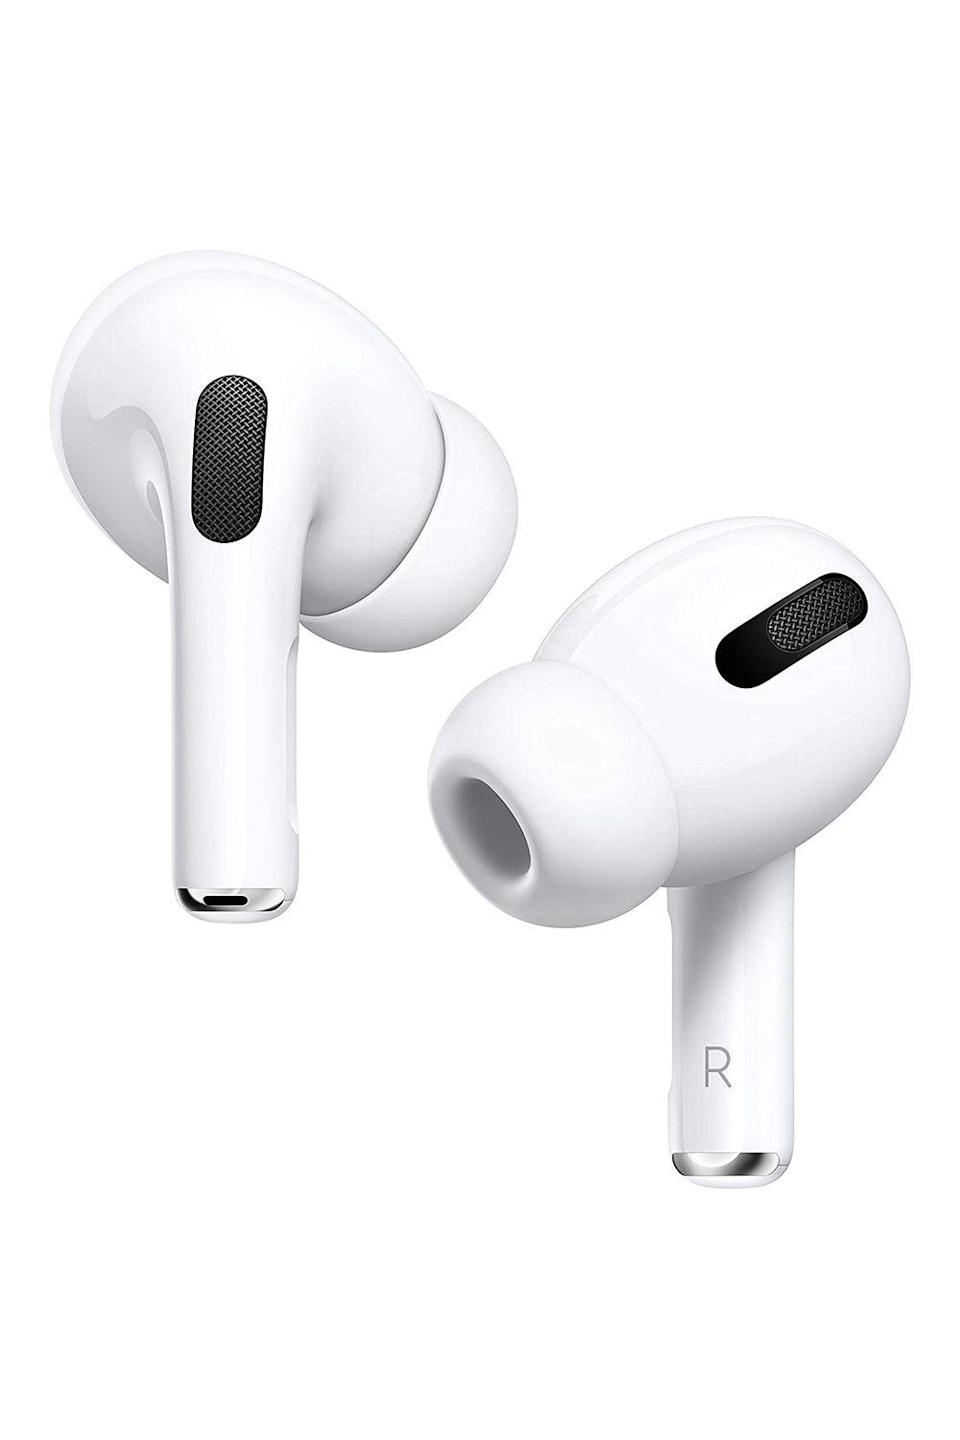 """<p><strong>Apple</strong></p><p>amazon.com</p><p><strong>$197.00</strong></p><p><a href=""""https://www.amazon.com/Apple-MWP22AM-A-AirPods-Pro/dp/B07ZPC9QD4?tag=syn-yahoo-20&ascsubtag=%5Bartid%7C10072.g.26961897%5Bsrc%7Cyahoo-us"""" rel=""""nofollow noopener"""" target=""""_blank"""" data-ylk=""""slk:Shop Now"""" class=""""link rapid-noclick-resp"""">Shop Now</a></p><p>Let's face it: You can only hear """"Rock-A-Bye Baby"""" and """"Twinkle, Twinkle, Little Star"""" so many times before losing your mind—so give your new dad the gift of peace and quiet with a pair of AirPods Pro. The wire-free design delivers quality audio performance, and more importantly, solid noise cancellation, so he can listen to his <a href=""""https://www.oprahmag.com/entertainment/g34184521/best-educational-podcasts/"""" rel=""""nofollow noopener"""" target=""""_blank"""" data-ylk=""""slk:favorite podcast"""" class=""""link rapid-noclick-resp"""">favorite podcast</a> or work on his<a href=""""https://www.oprahmag.com/life/health/g29861798/best-meditation-apps/"""" rel=""""nofollow noopener"""" target=""""_blank"""" data-ylk=""""slk:meditation practice"""" class=""""link rapid-noclick-resp""""> meditation practice</a>.</p>"""